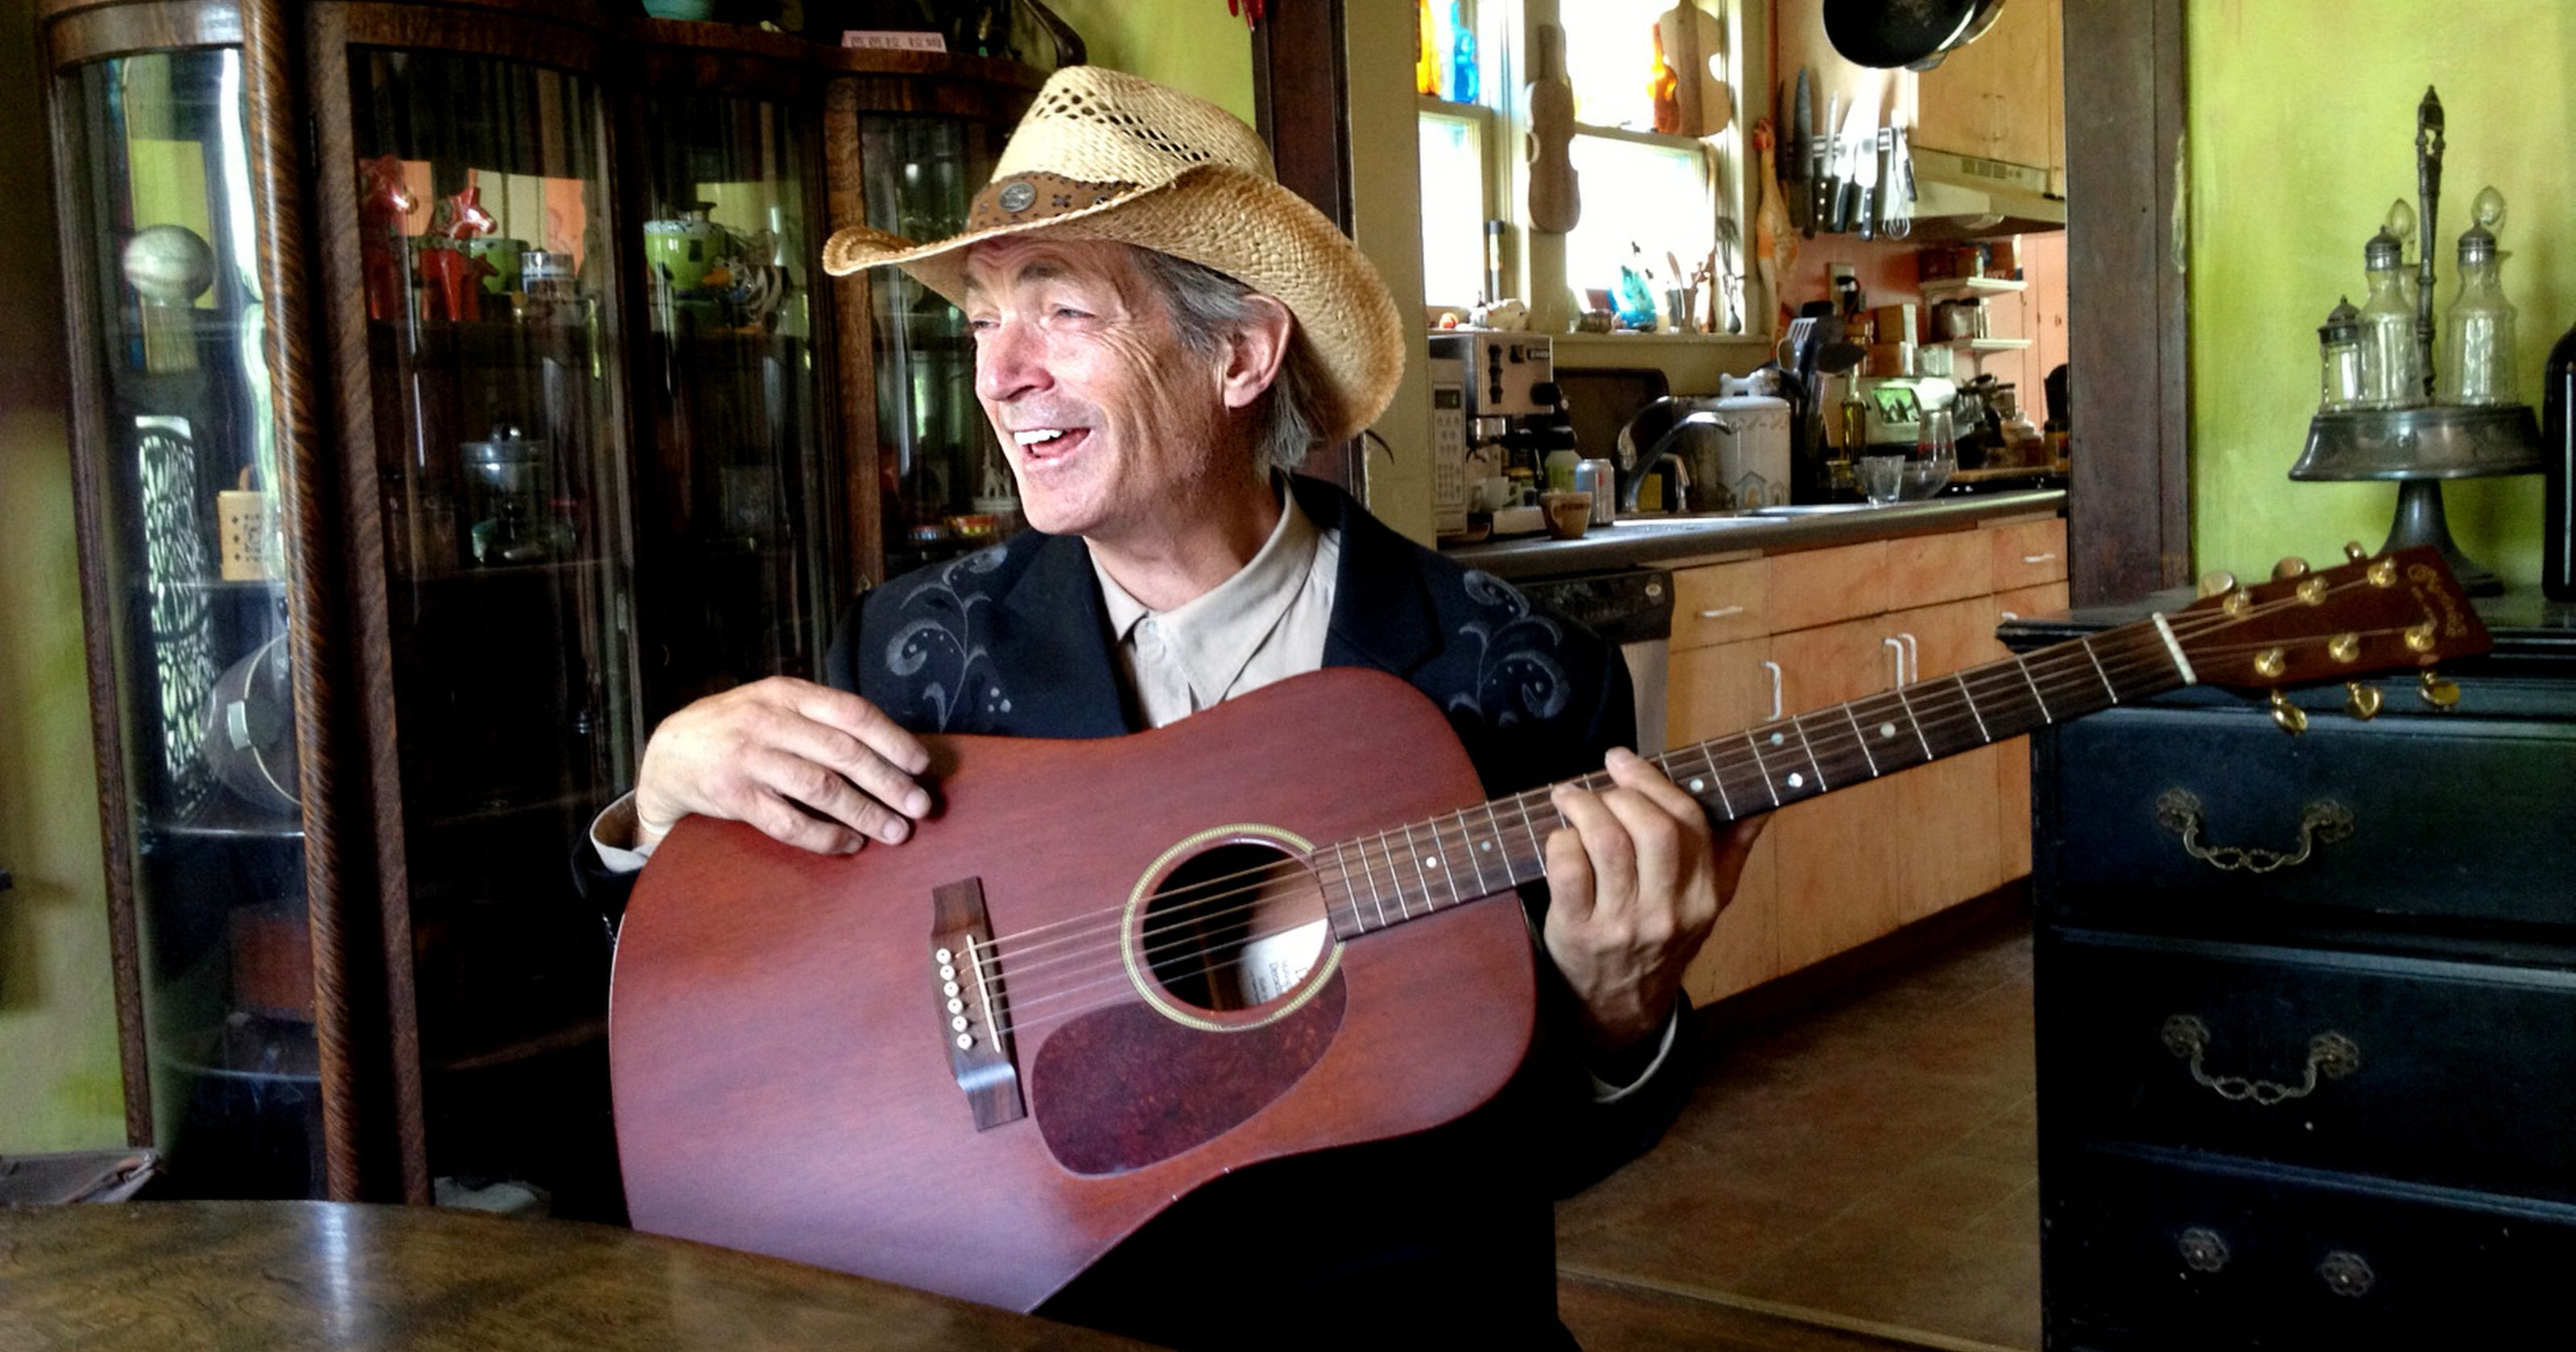 Doug Seegers Goes From Street Singer To Global Superstar